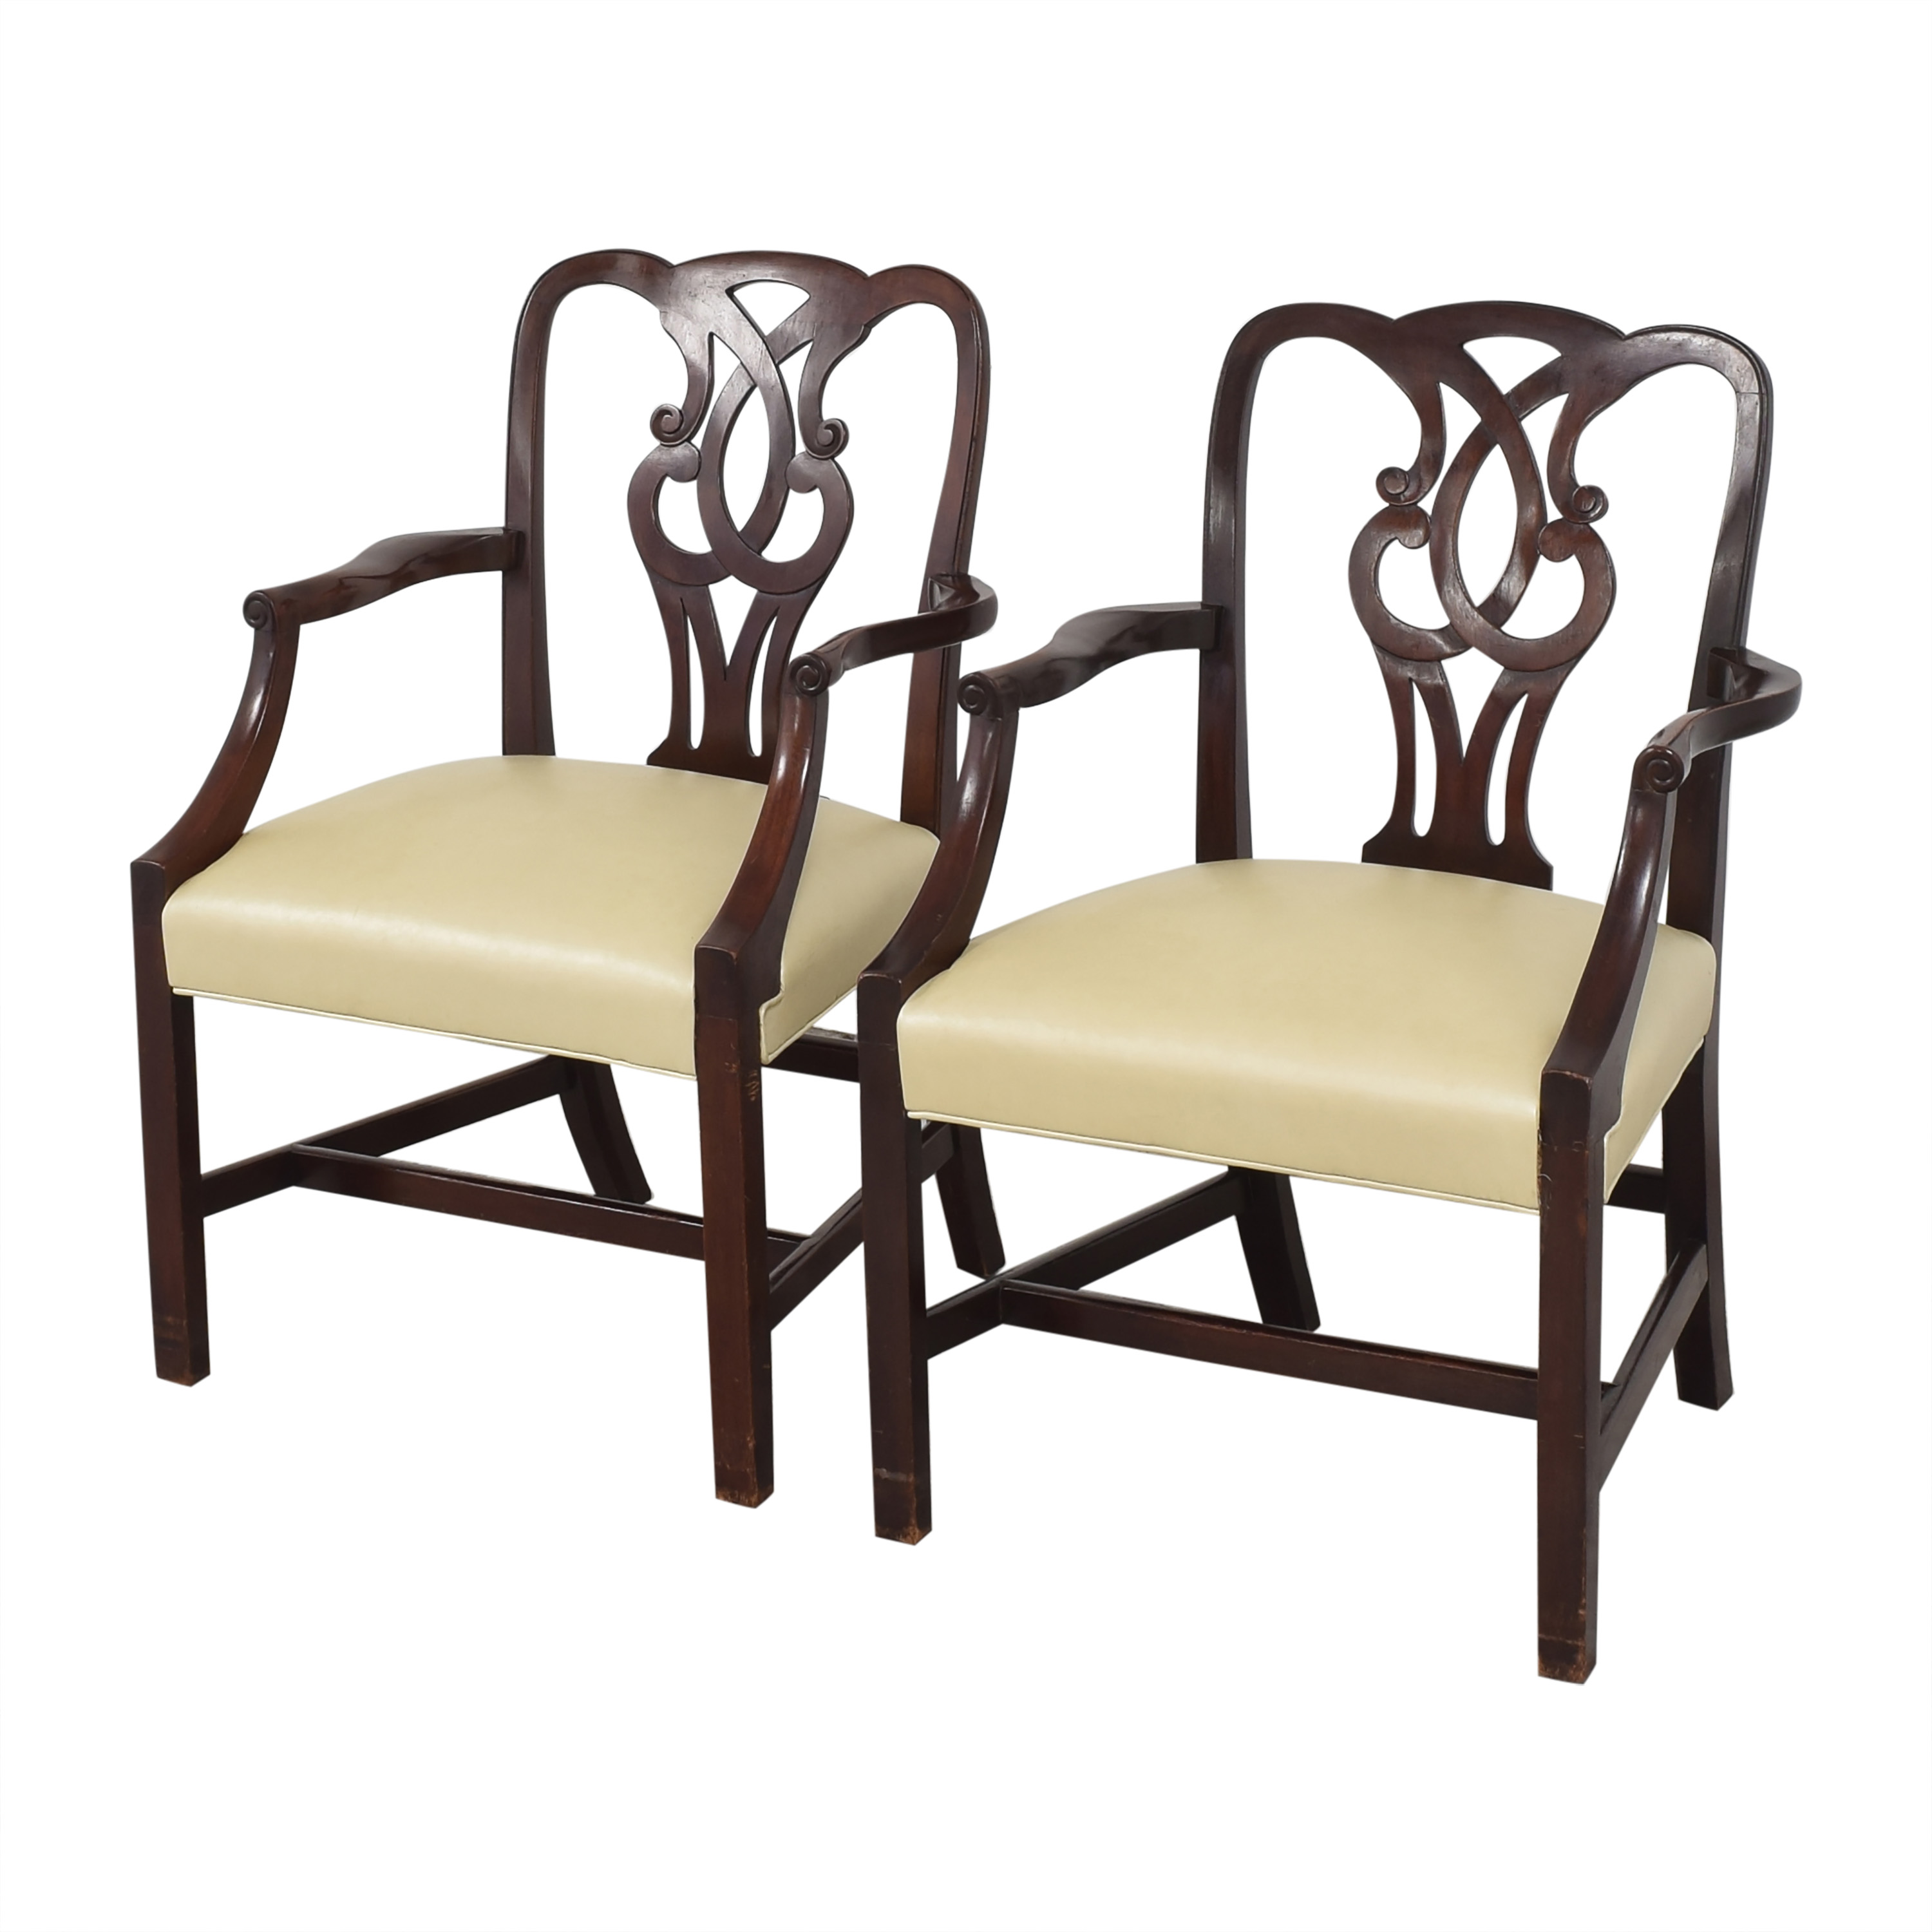 Baker Furniture Baker Furniture Chippendale-Style Dining Arm Chairs Chairs